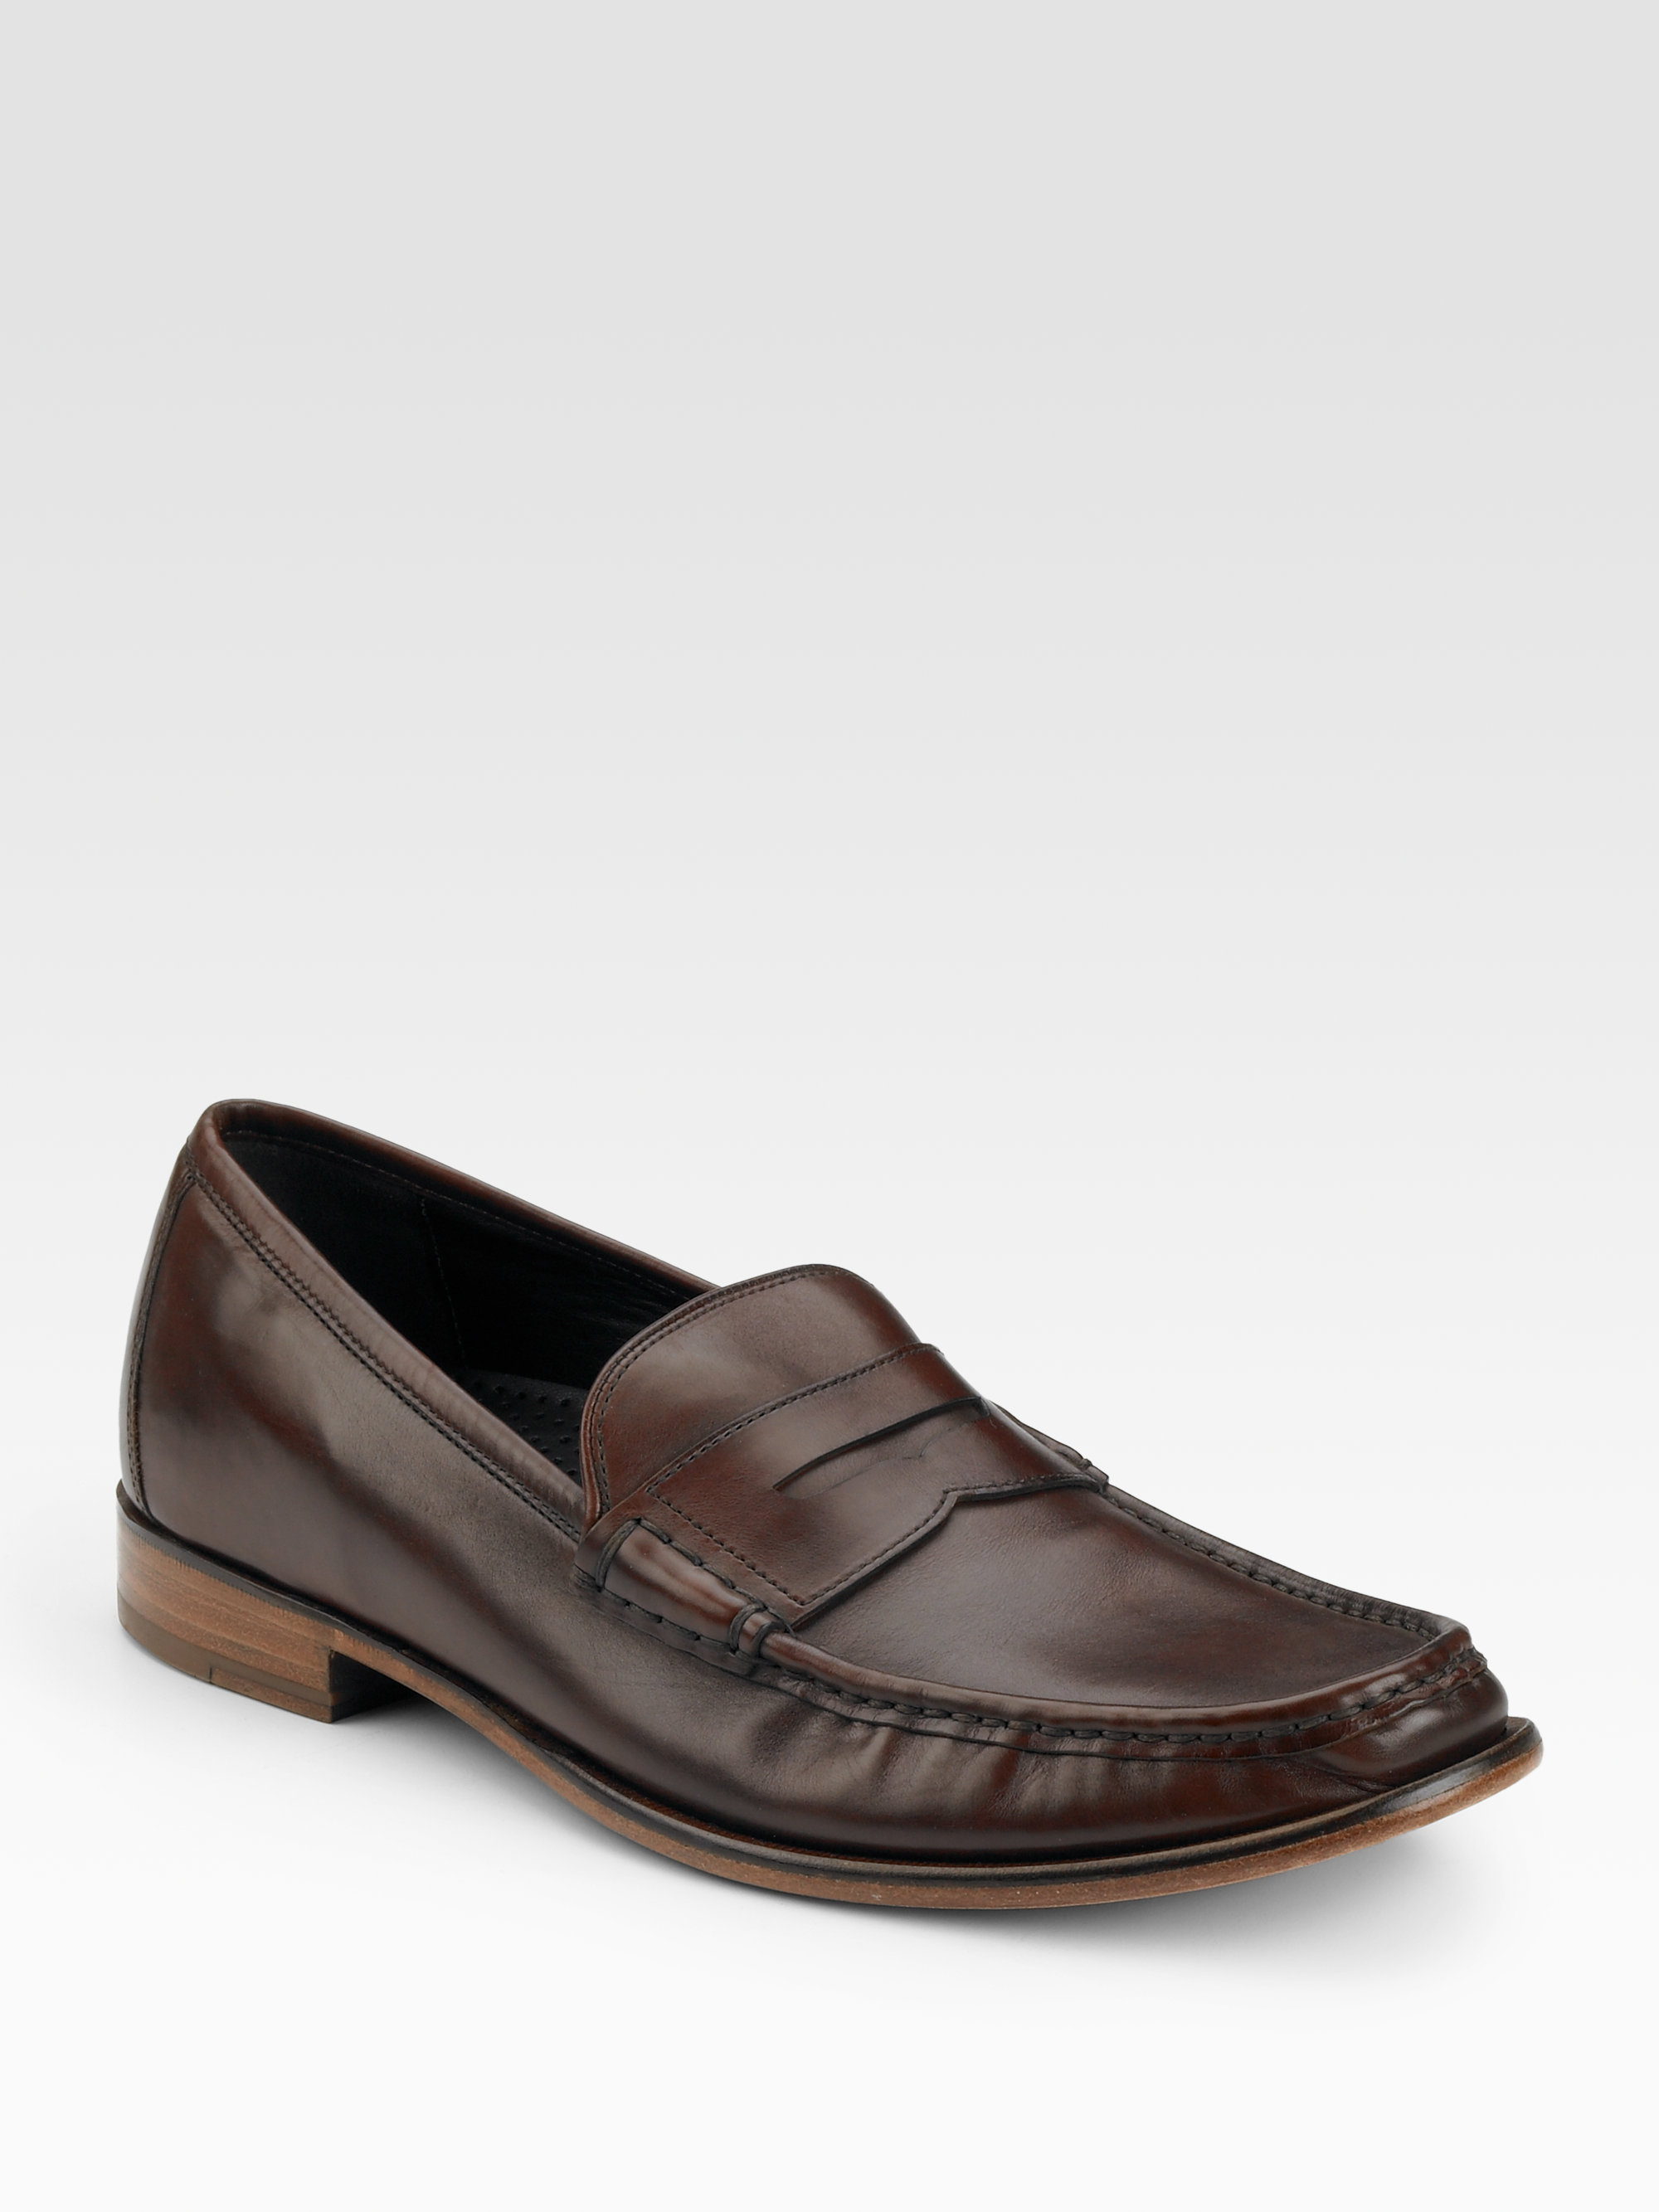 2be8fb05757 Lyst - Cole Haan Air Aiden Penny Loafers in Brown for Men